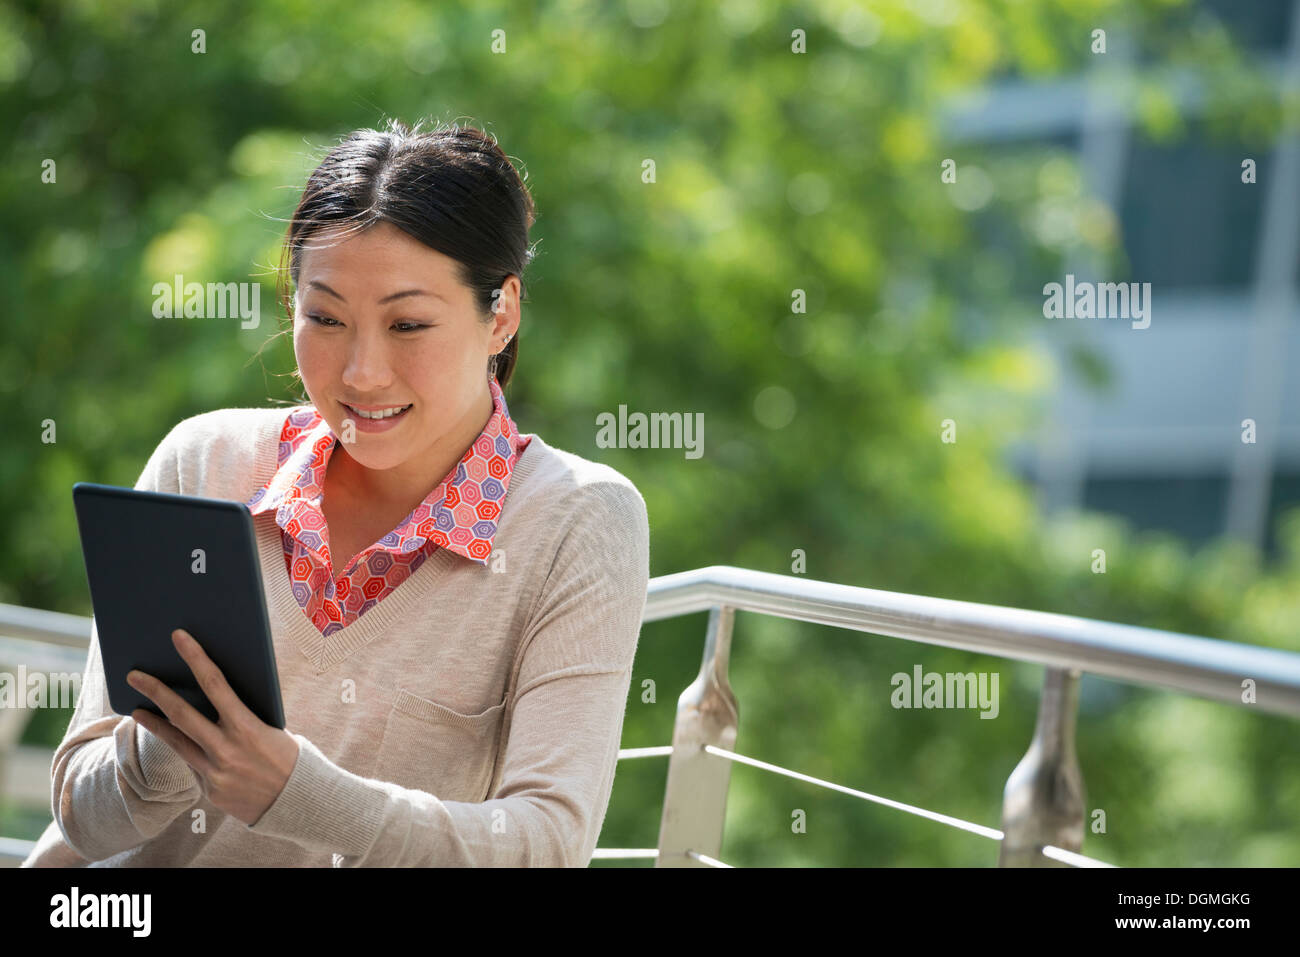 Summer. Business people. A woman using a digital tablet, working. Keeping in touch. - Stock Image